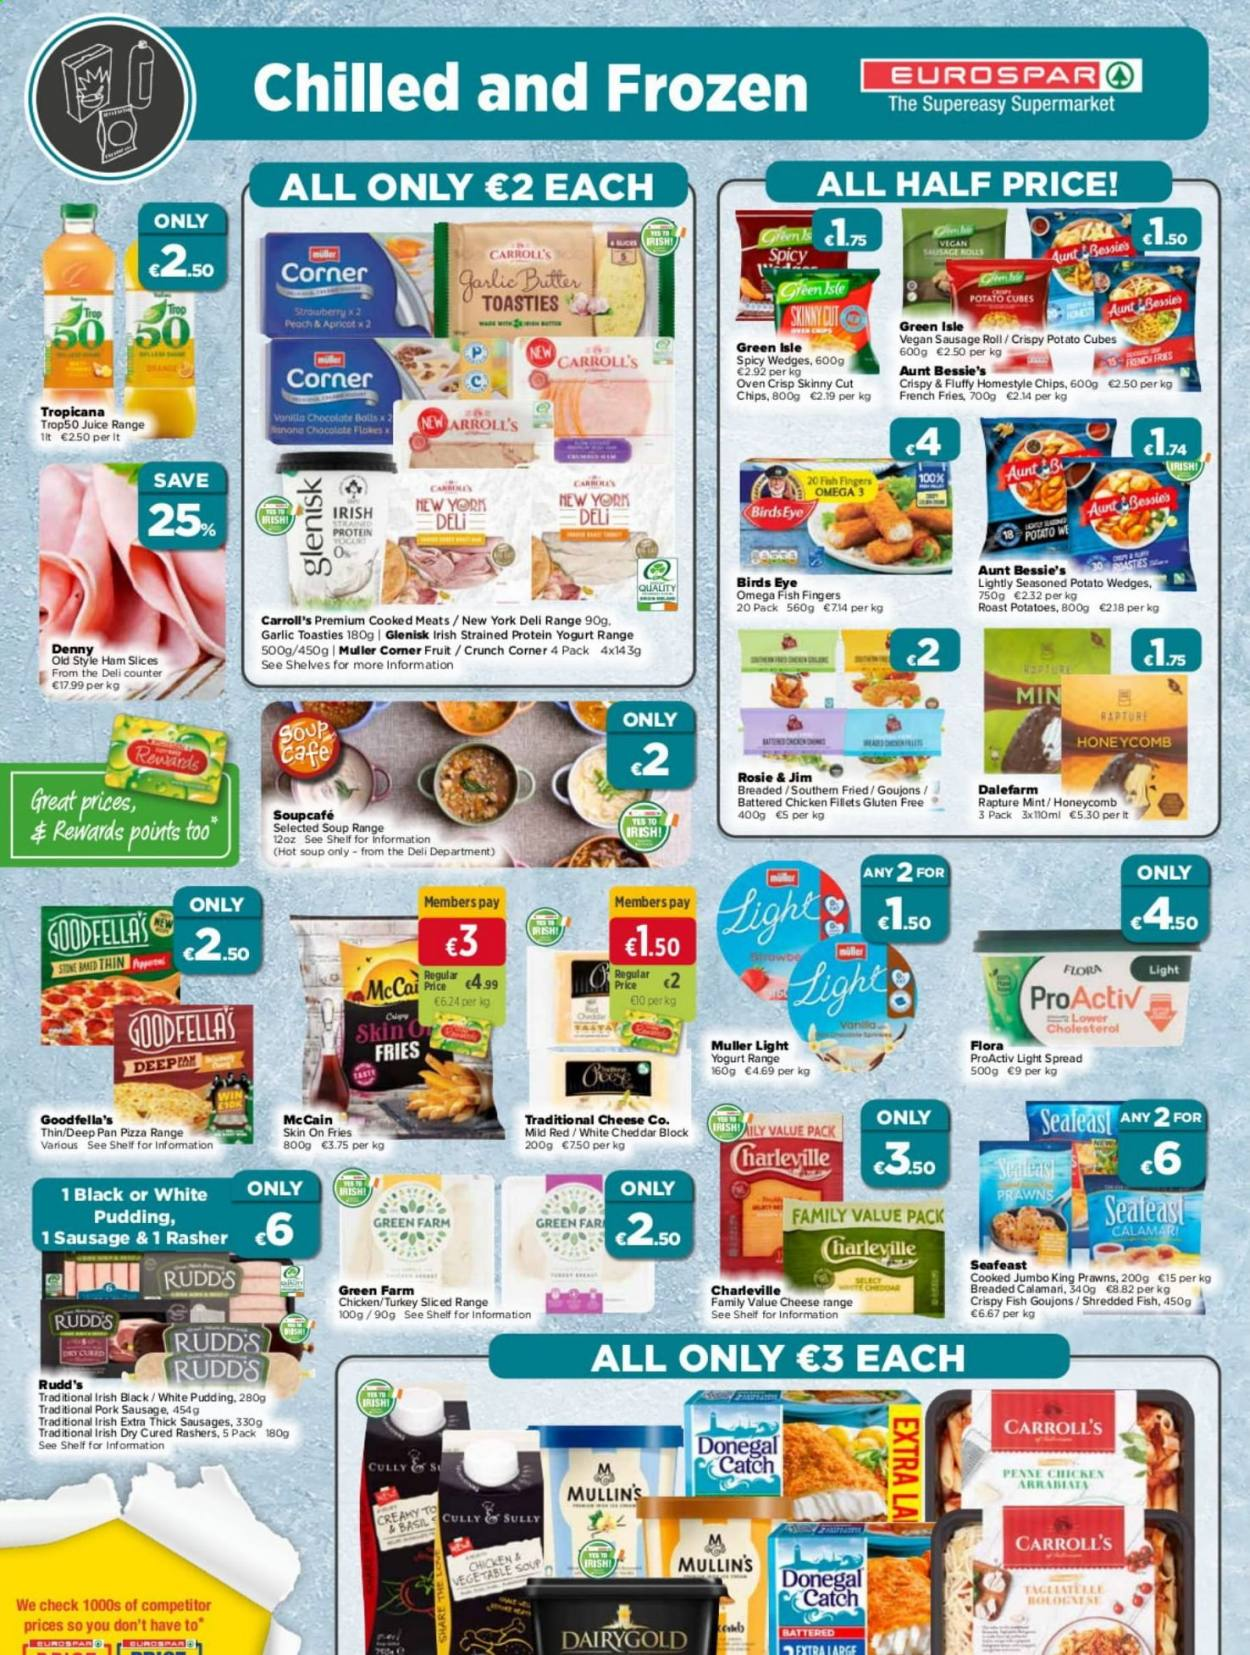 EUROSPAR offer  - 1.10.2020 - 21.10.2020 - Sales products - butter, calamari, frozen, garlic, mccain, mint, sausage, sausage roll, sausages, shelf, shelves, turkey, vegan, vegetable soup, yogurt, ham, pizza, pork meat, pork sausage, potato wedges, potatoes, prawns, protein, pudding, cheddar, chicken, pan, omega-3, oven, chips, chocolate, cheese, juice, soup, vegetable, french fries, flora, apricot, gluten free, fruit, miller, rolls, fish, roast. Page 6.